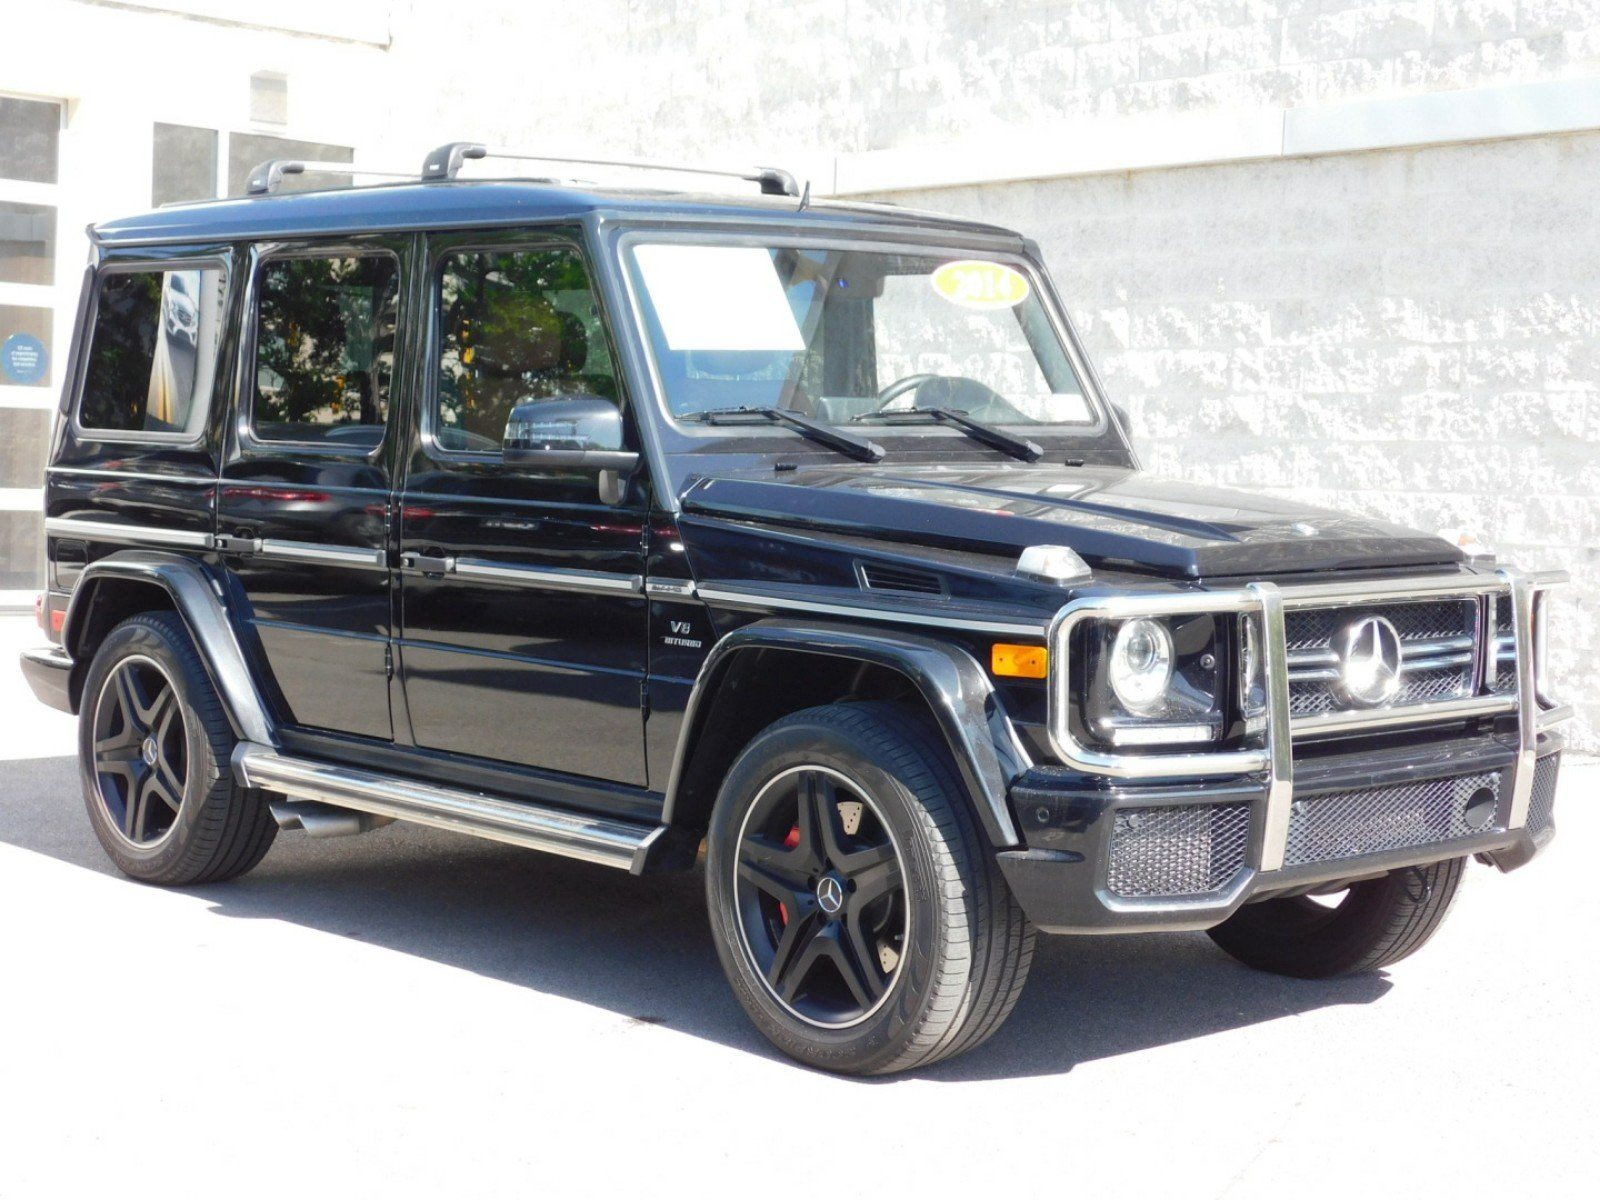 Pre Owned 2014 Mercedes Benz G Class G 63 AMG SUV in Salt Lake City